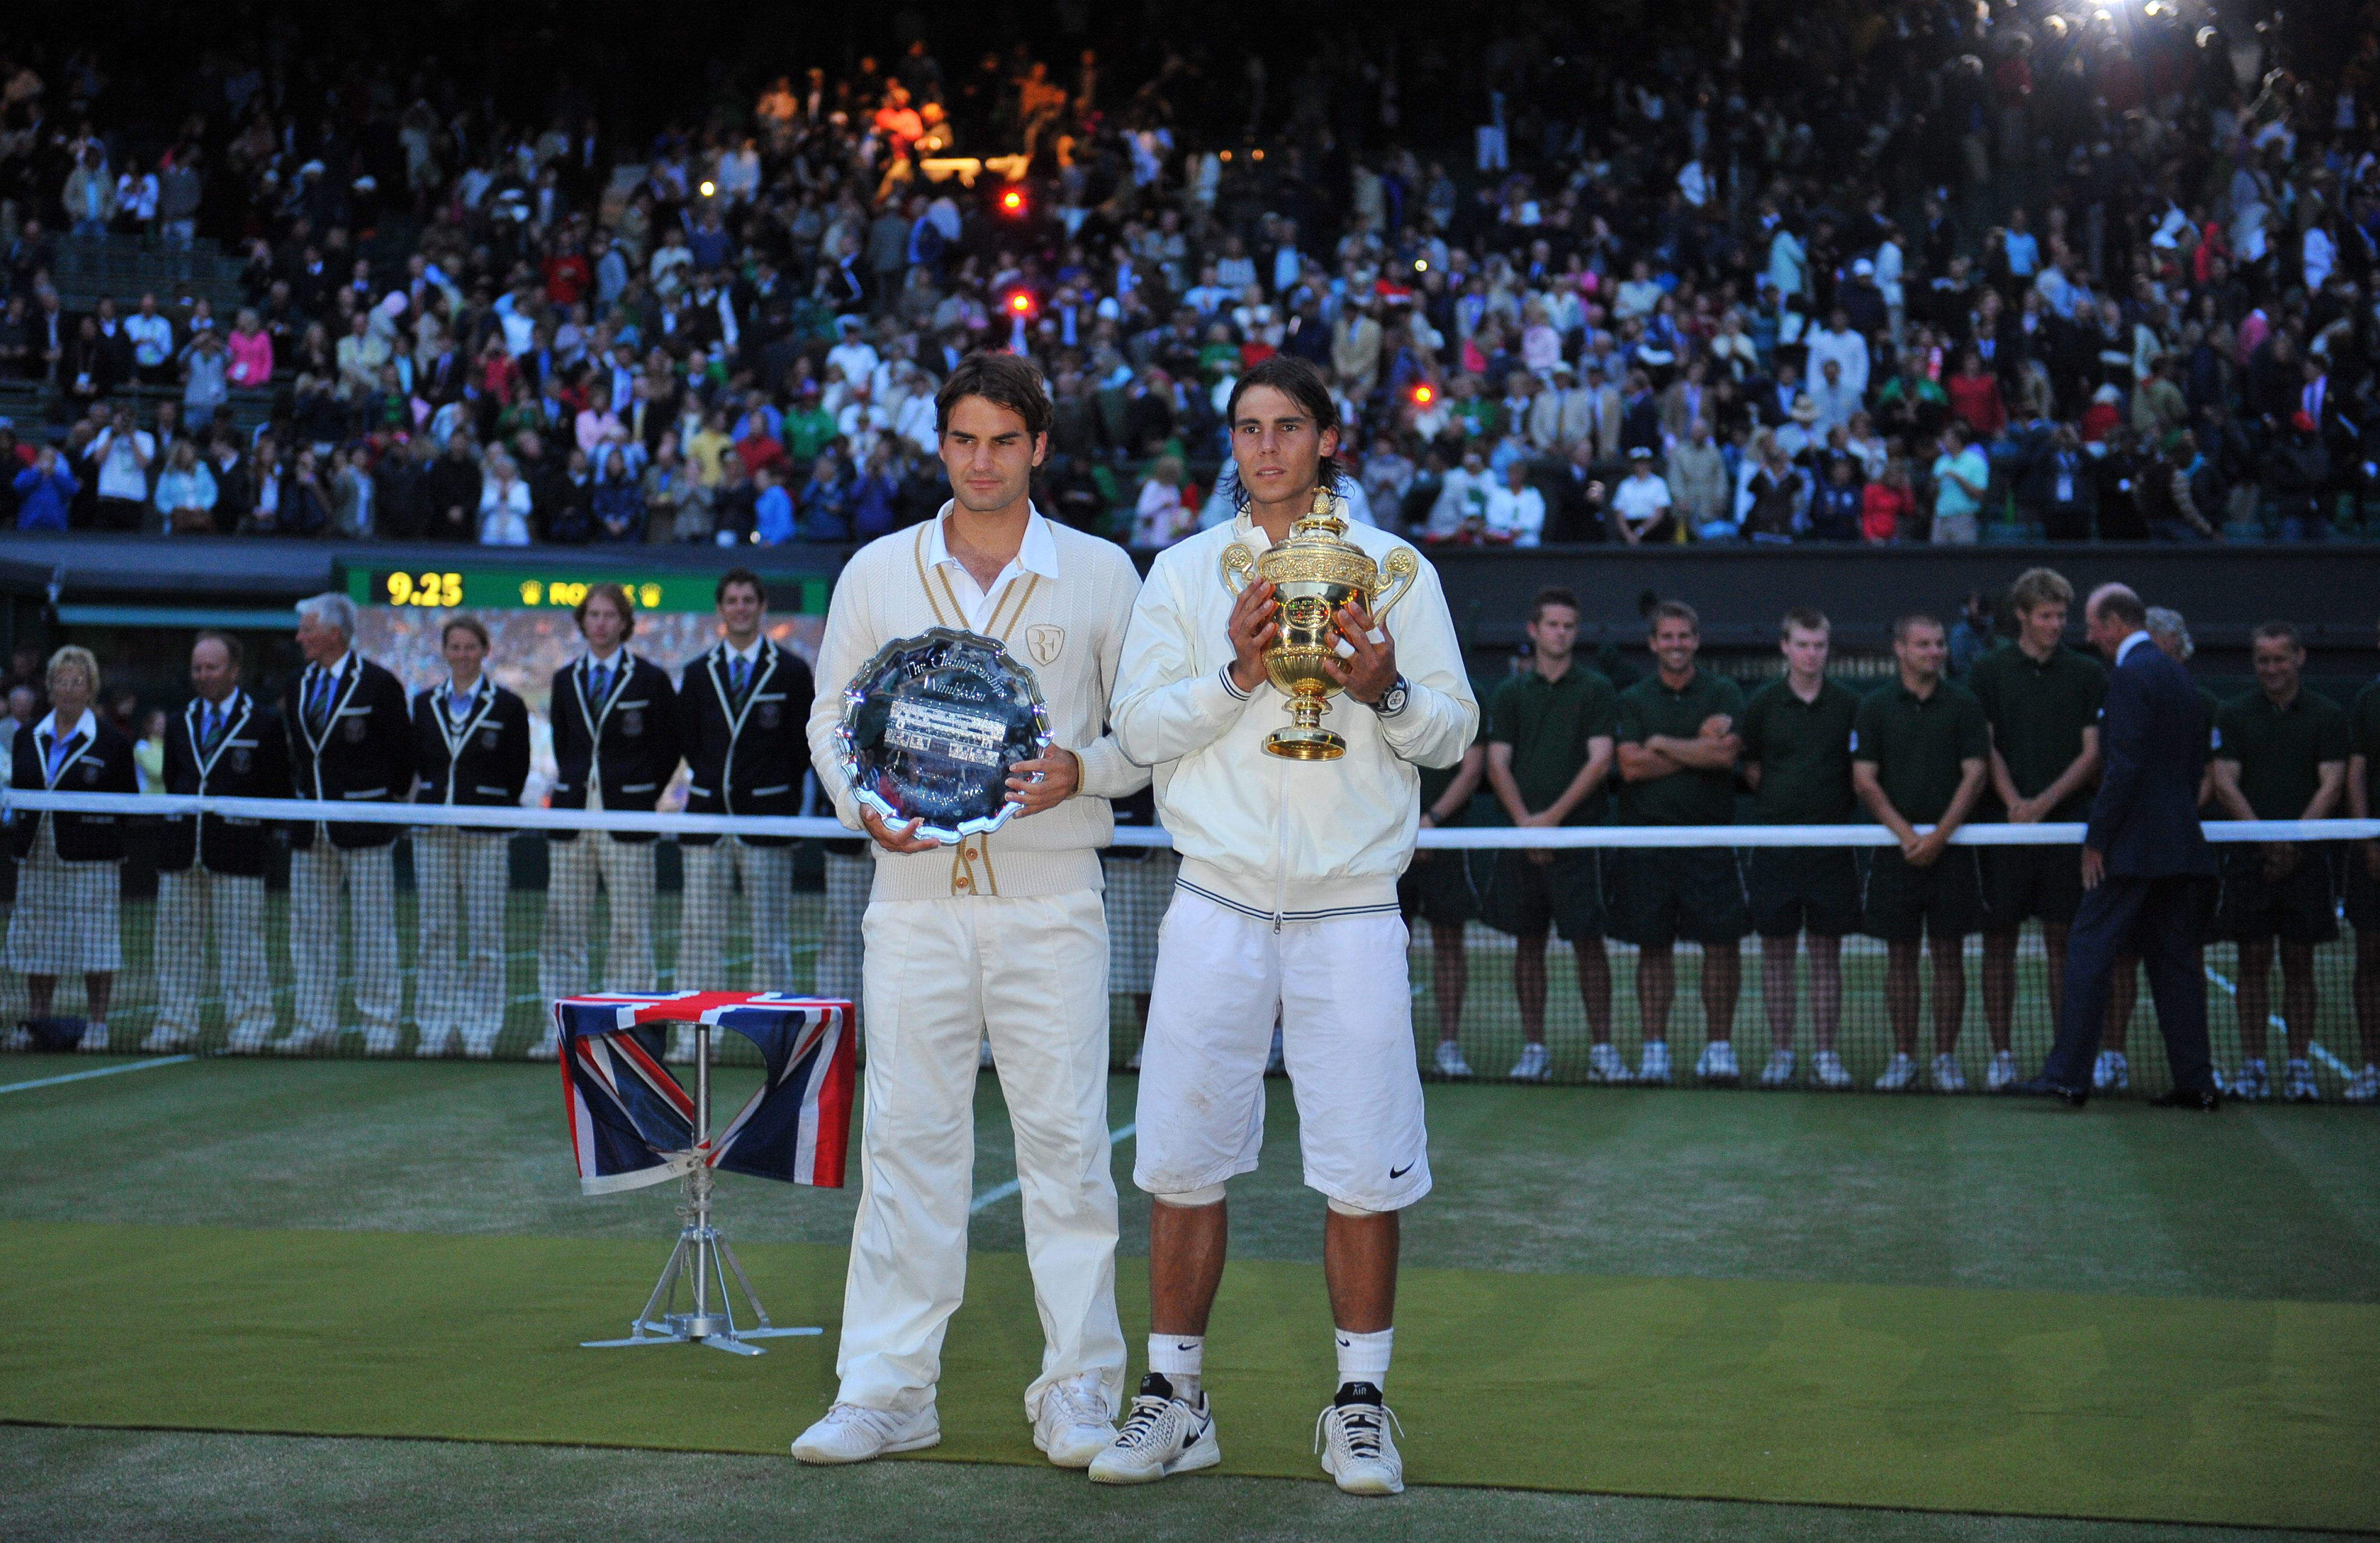 Rafael Nadal's win over Roger Federer in the 2008 final was one of the sport's greatest ever matches